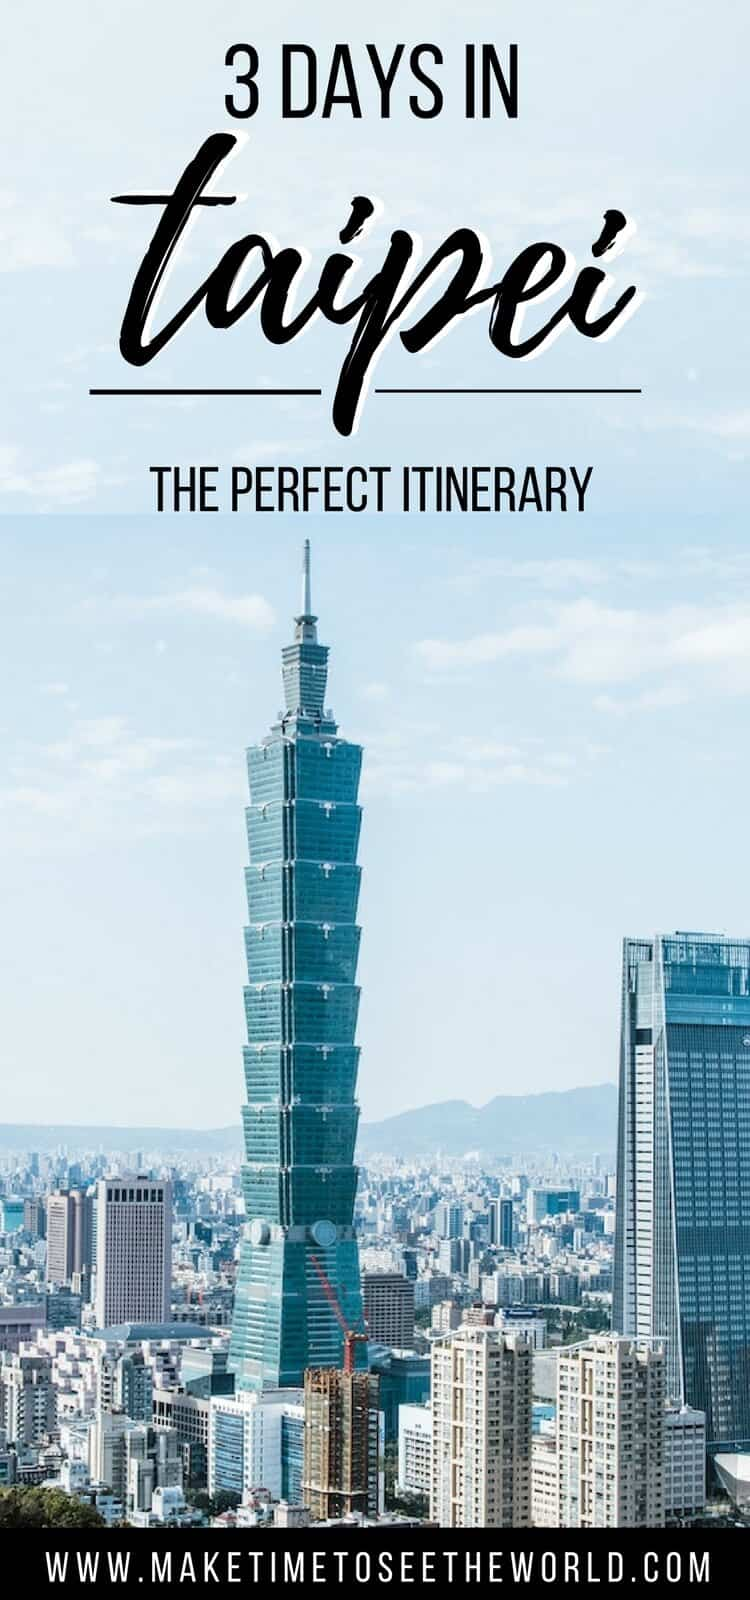 """Taipei Itinerary"" text overlay on an image of Taipei's skyline and observation tower"